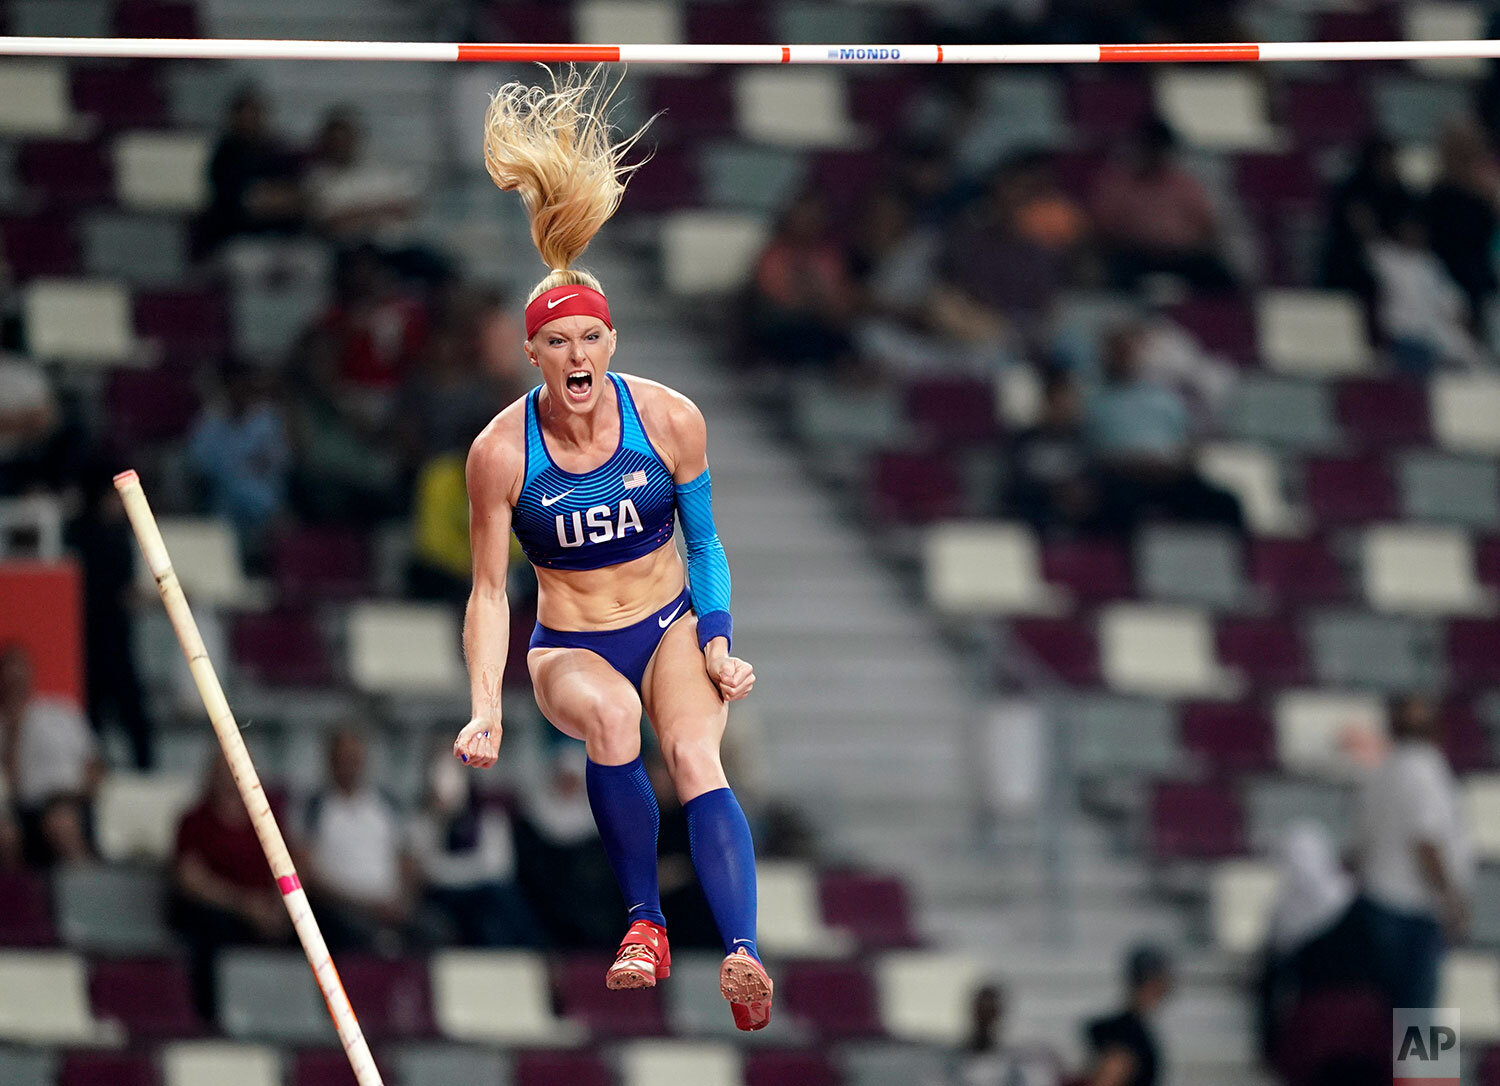 Sandi Morris, of the United States, competes in the women's pole vault final at the World Athletics Championships in Doha, Qatar, Sunday, Sept. 29, 2019. (AP Photo/David J. Phillip)